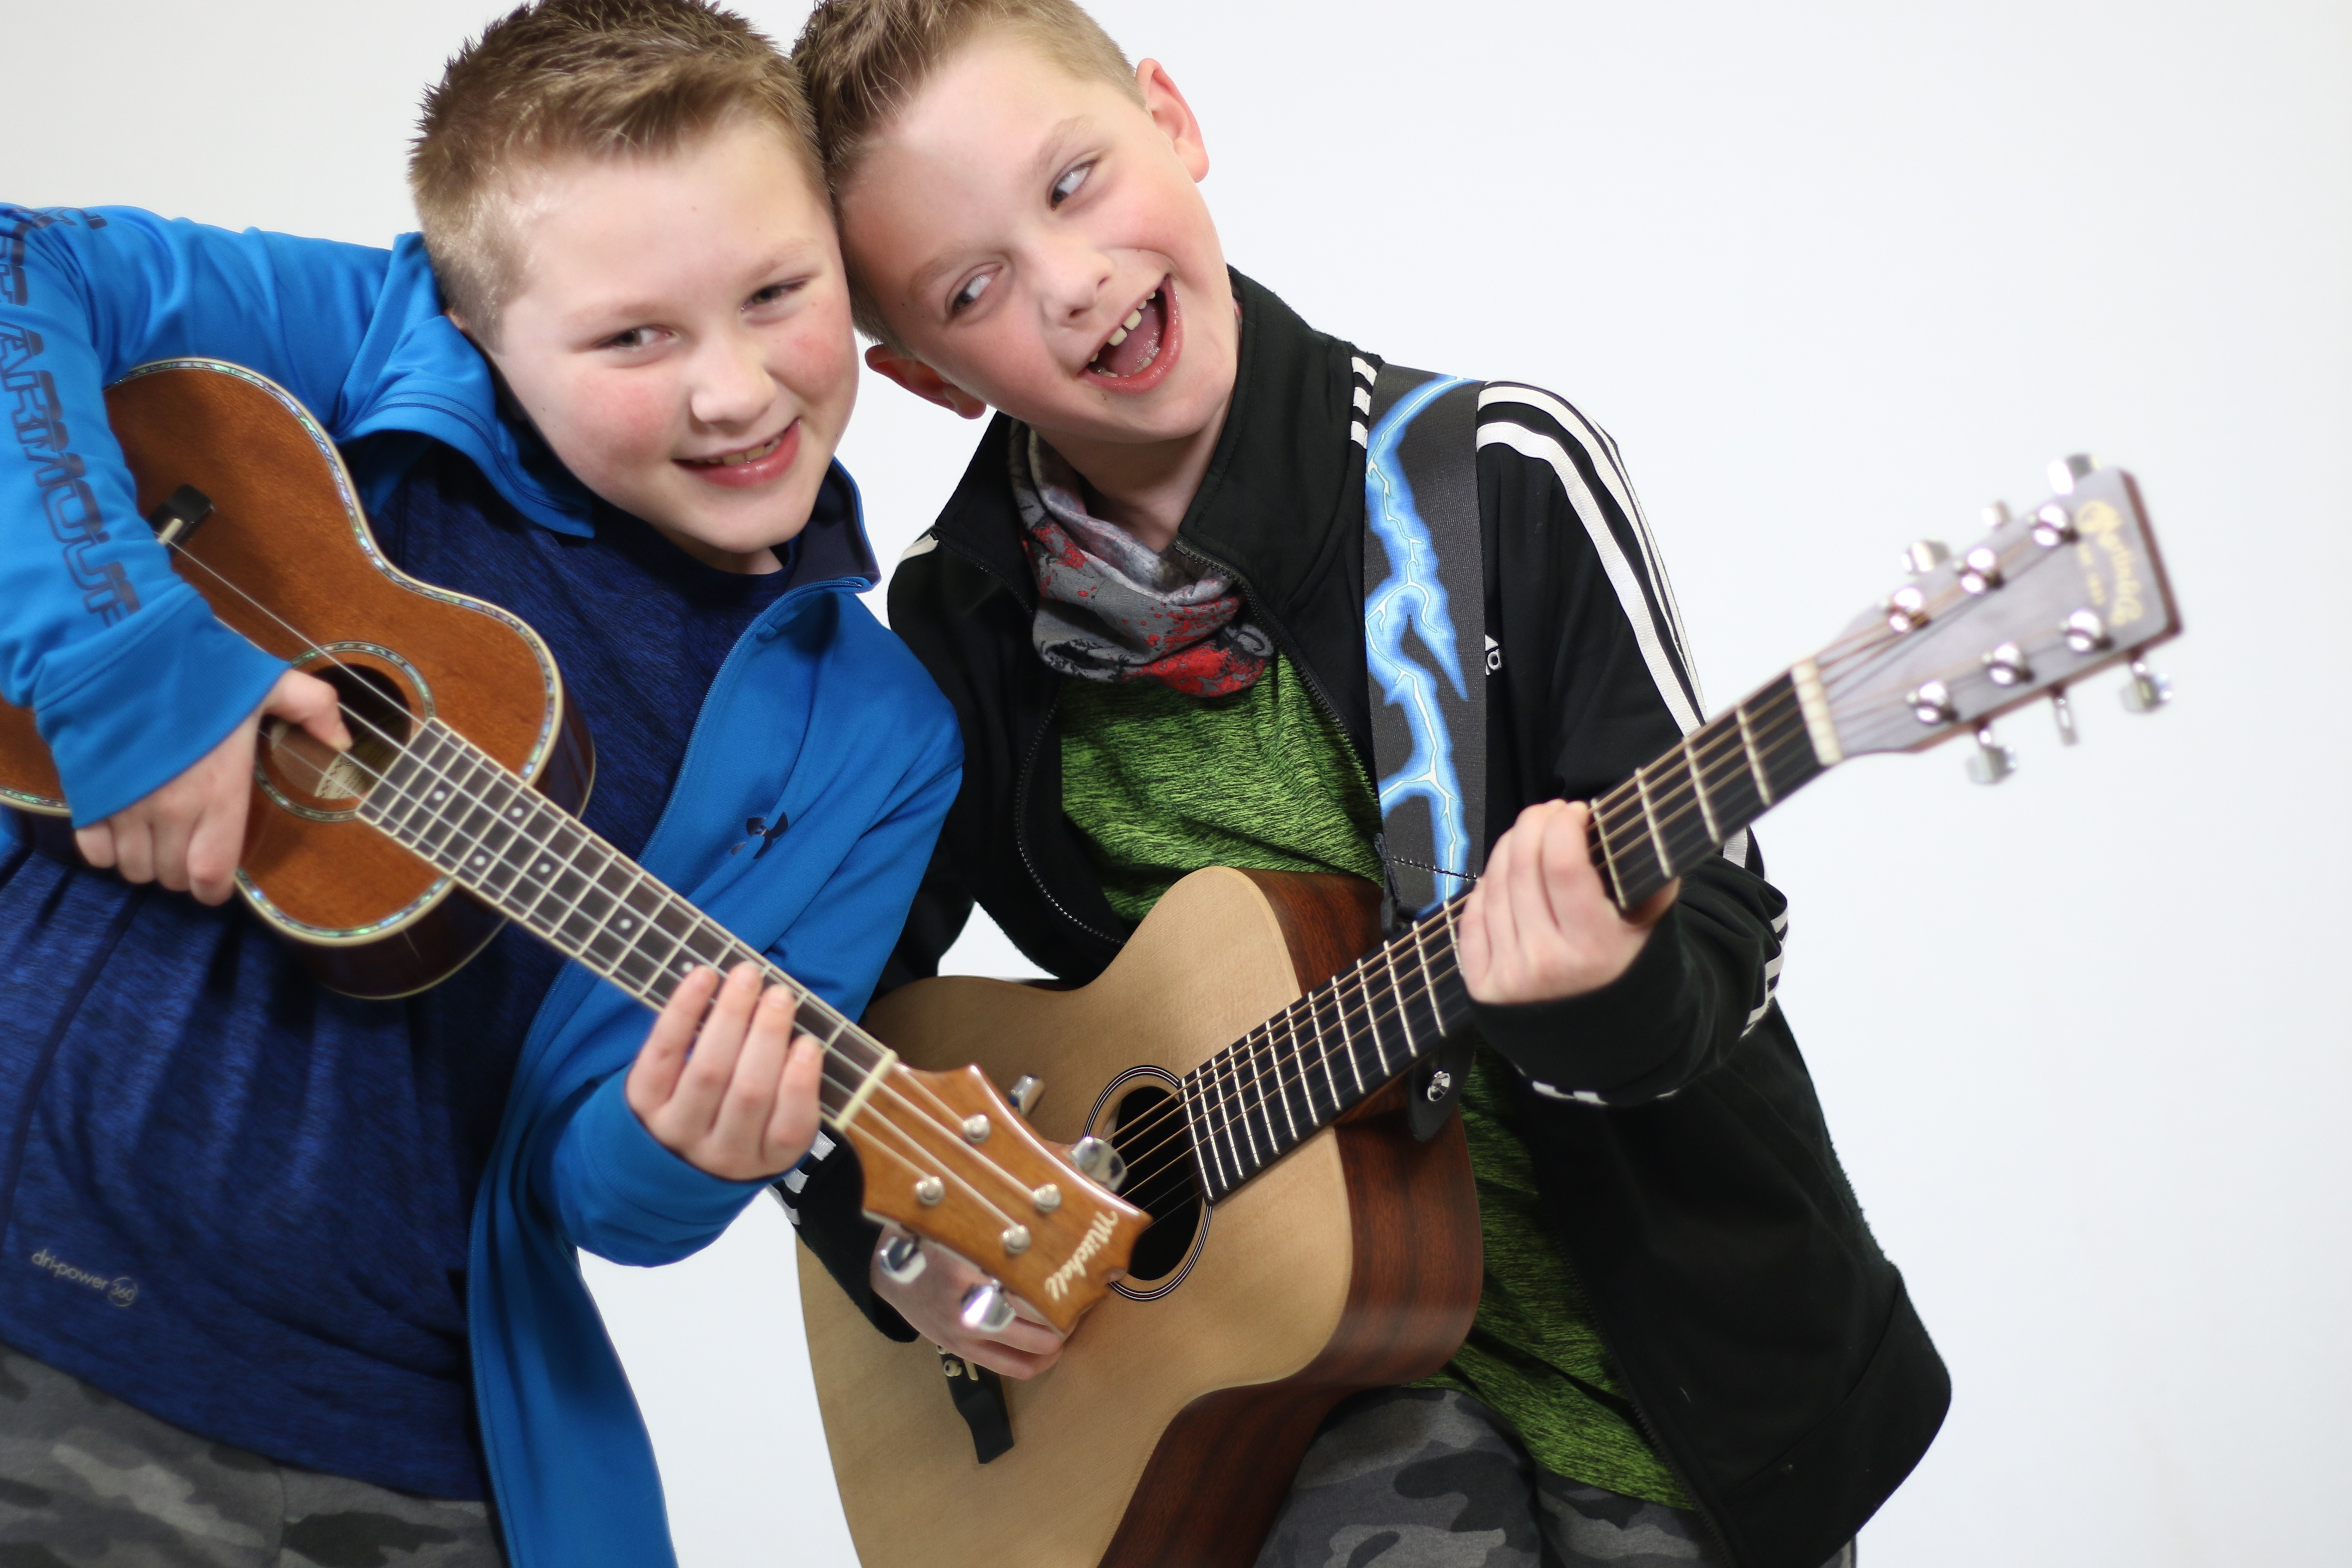 2 guitar lesson boys